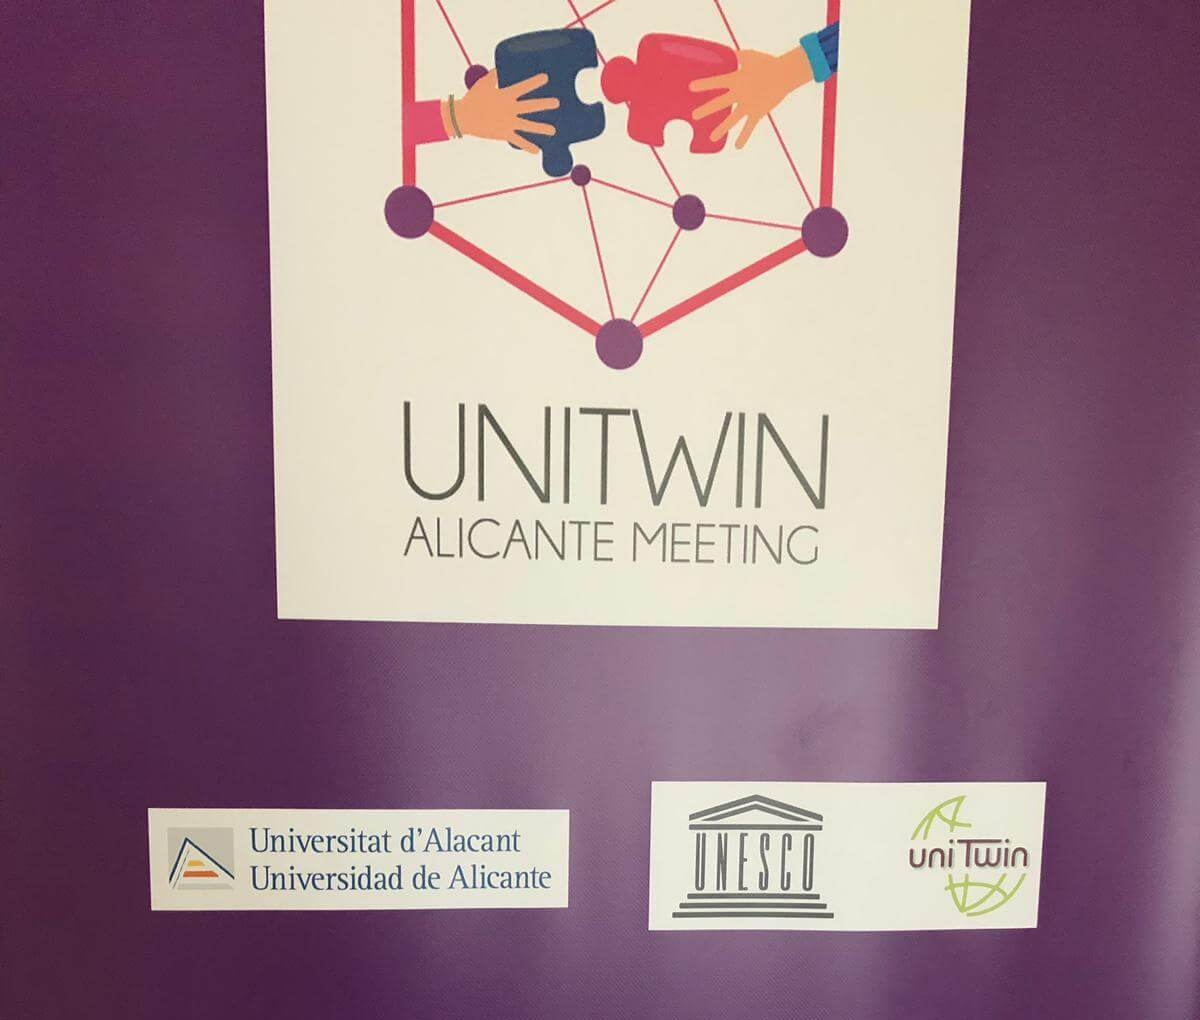 Site by Site UniTwin Alicante 2019